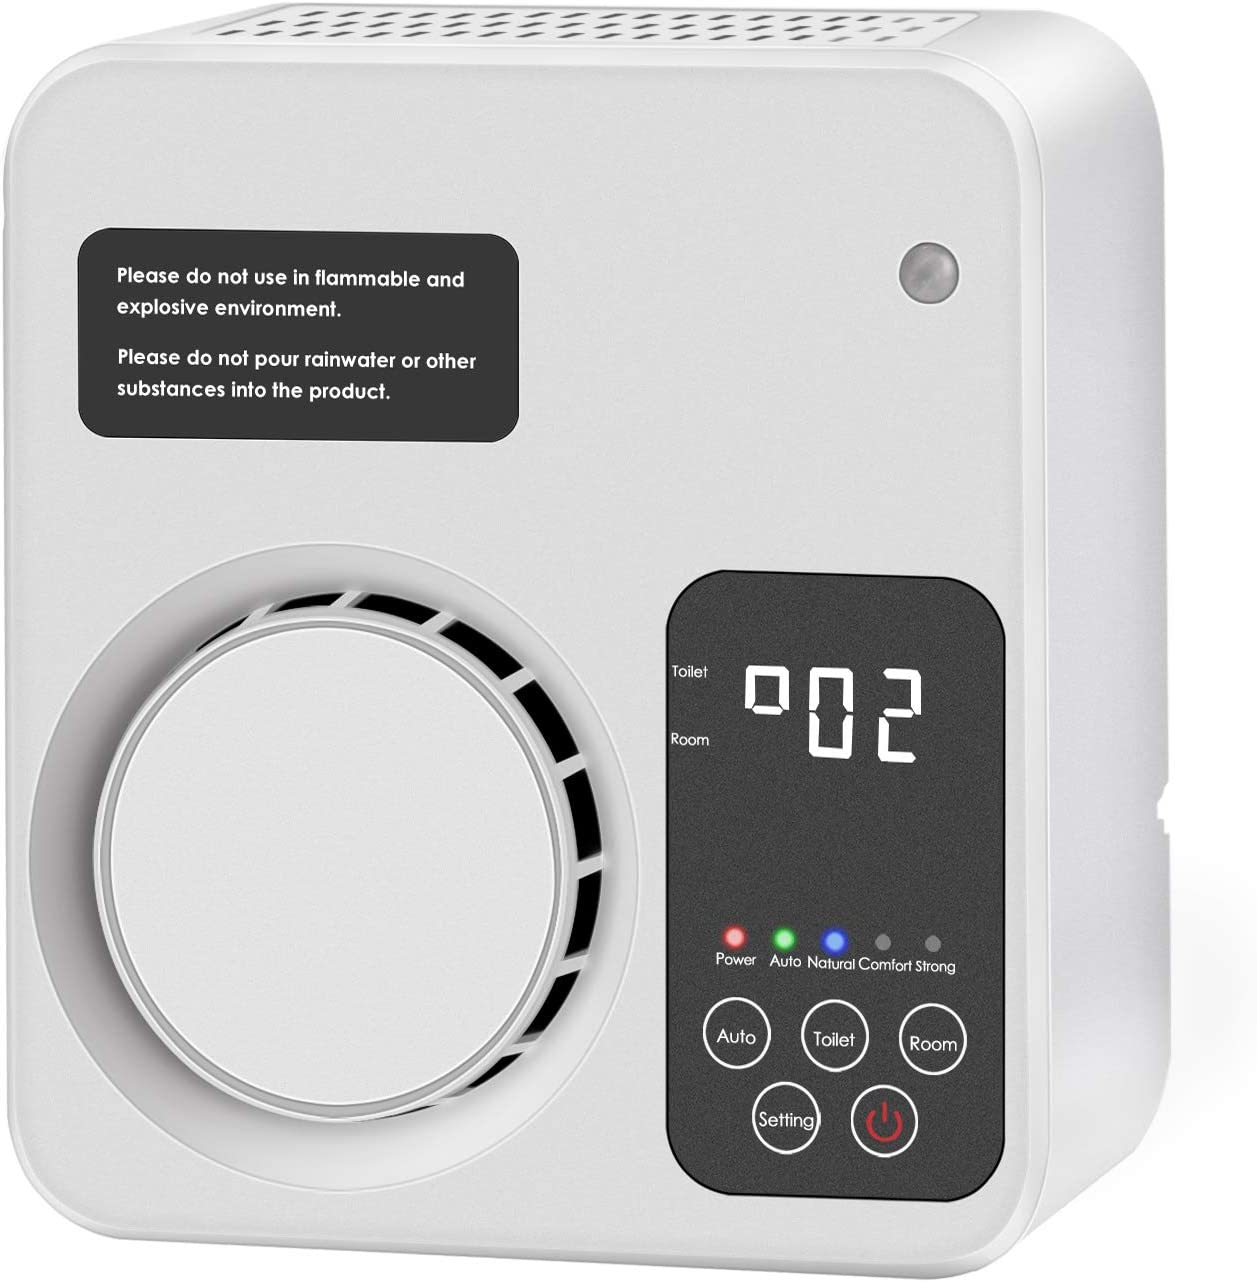 POLAMD Air Purifier for Home WAS £59.99 NOW £29.99 w/code N2HQ6ESF @ Amazon